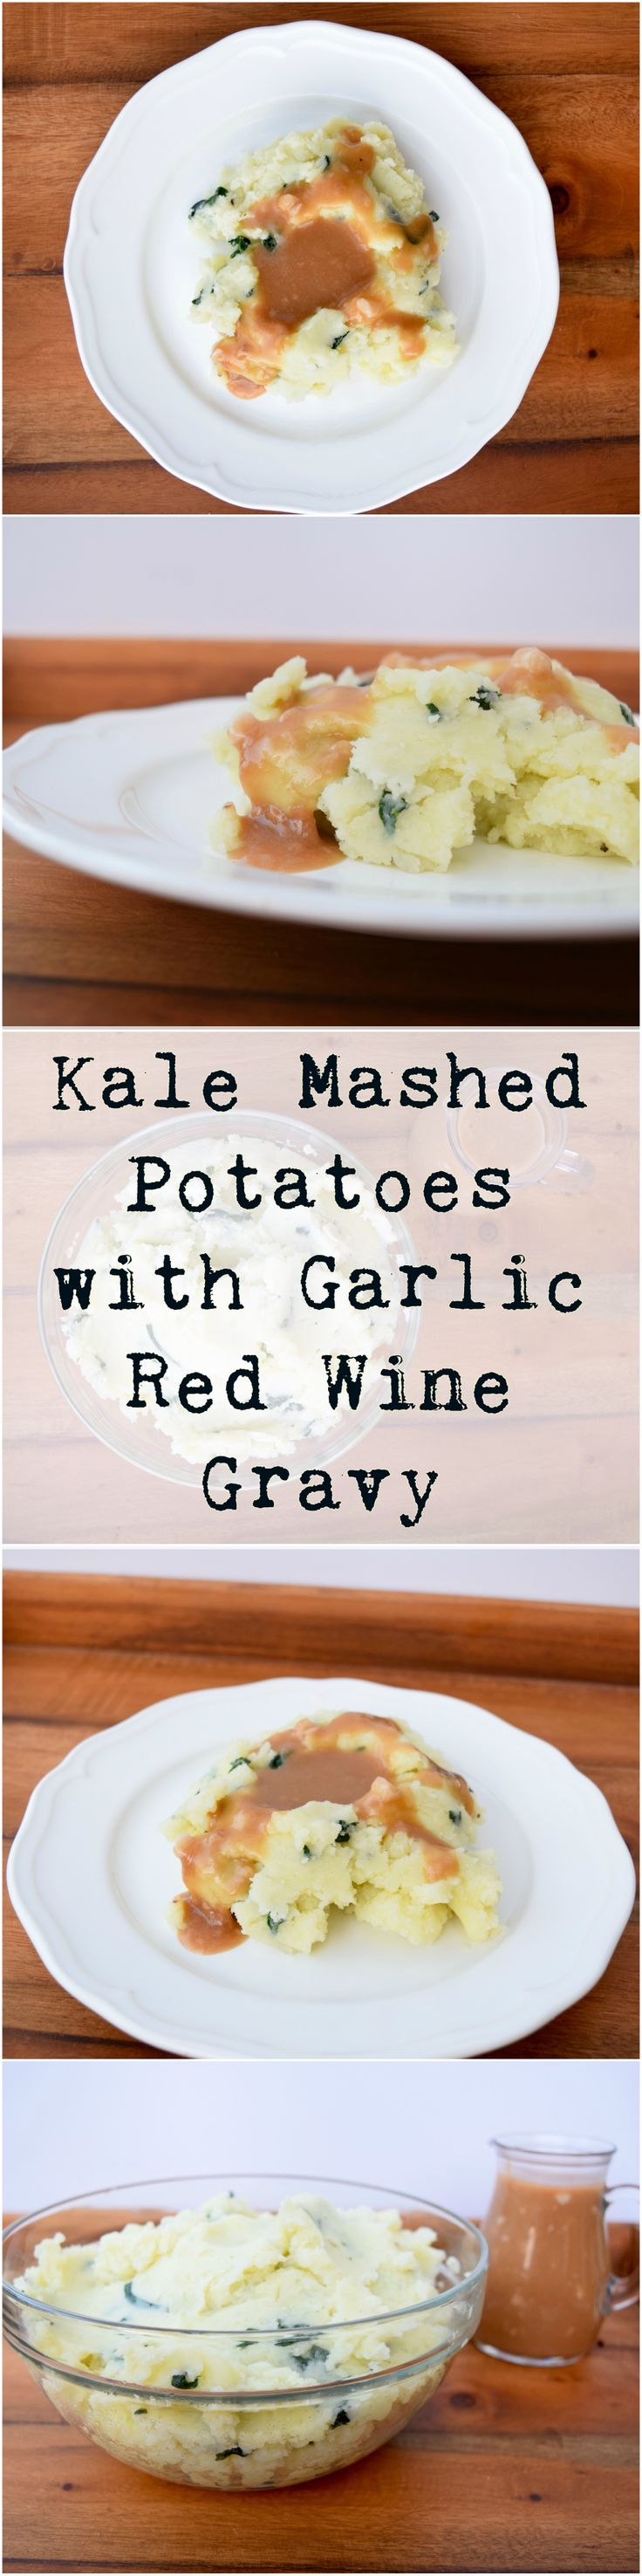 Creamy and smooth vegan mashed potatoes get a boost with amazing red wine and garlic gravy. Delicious!